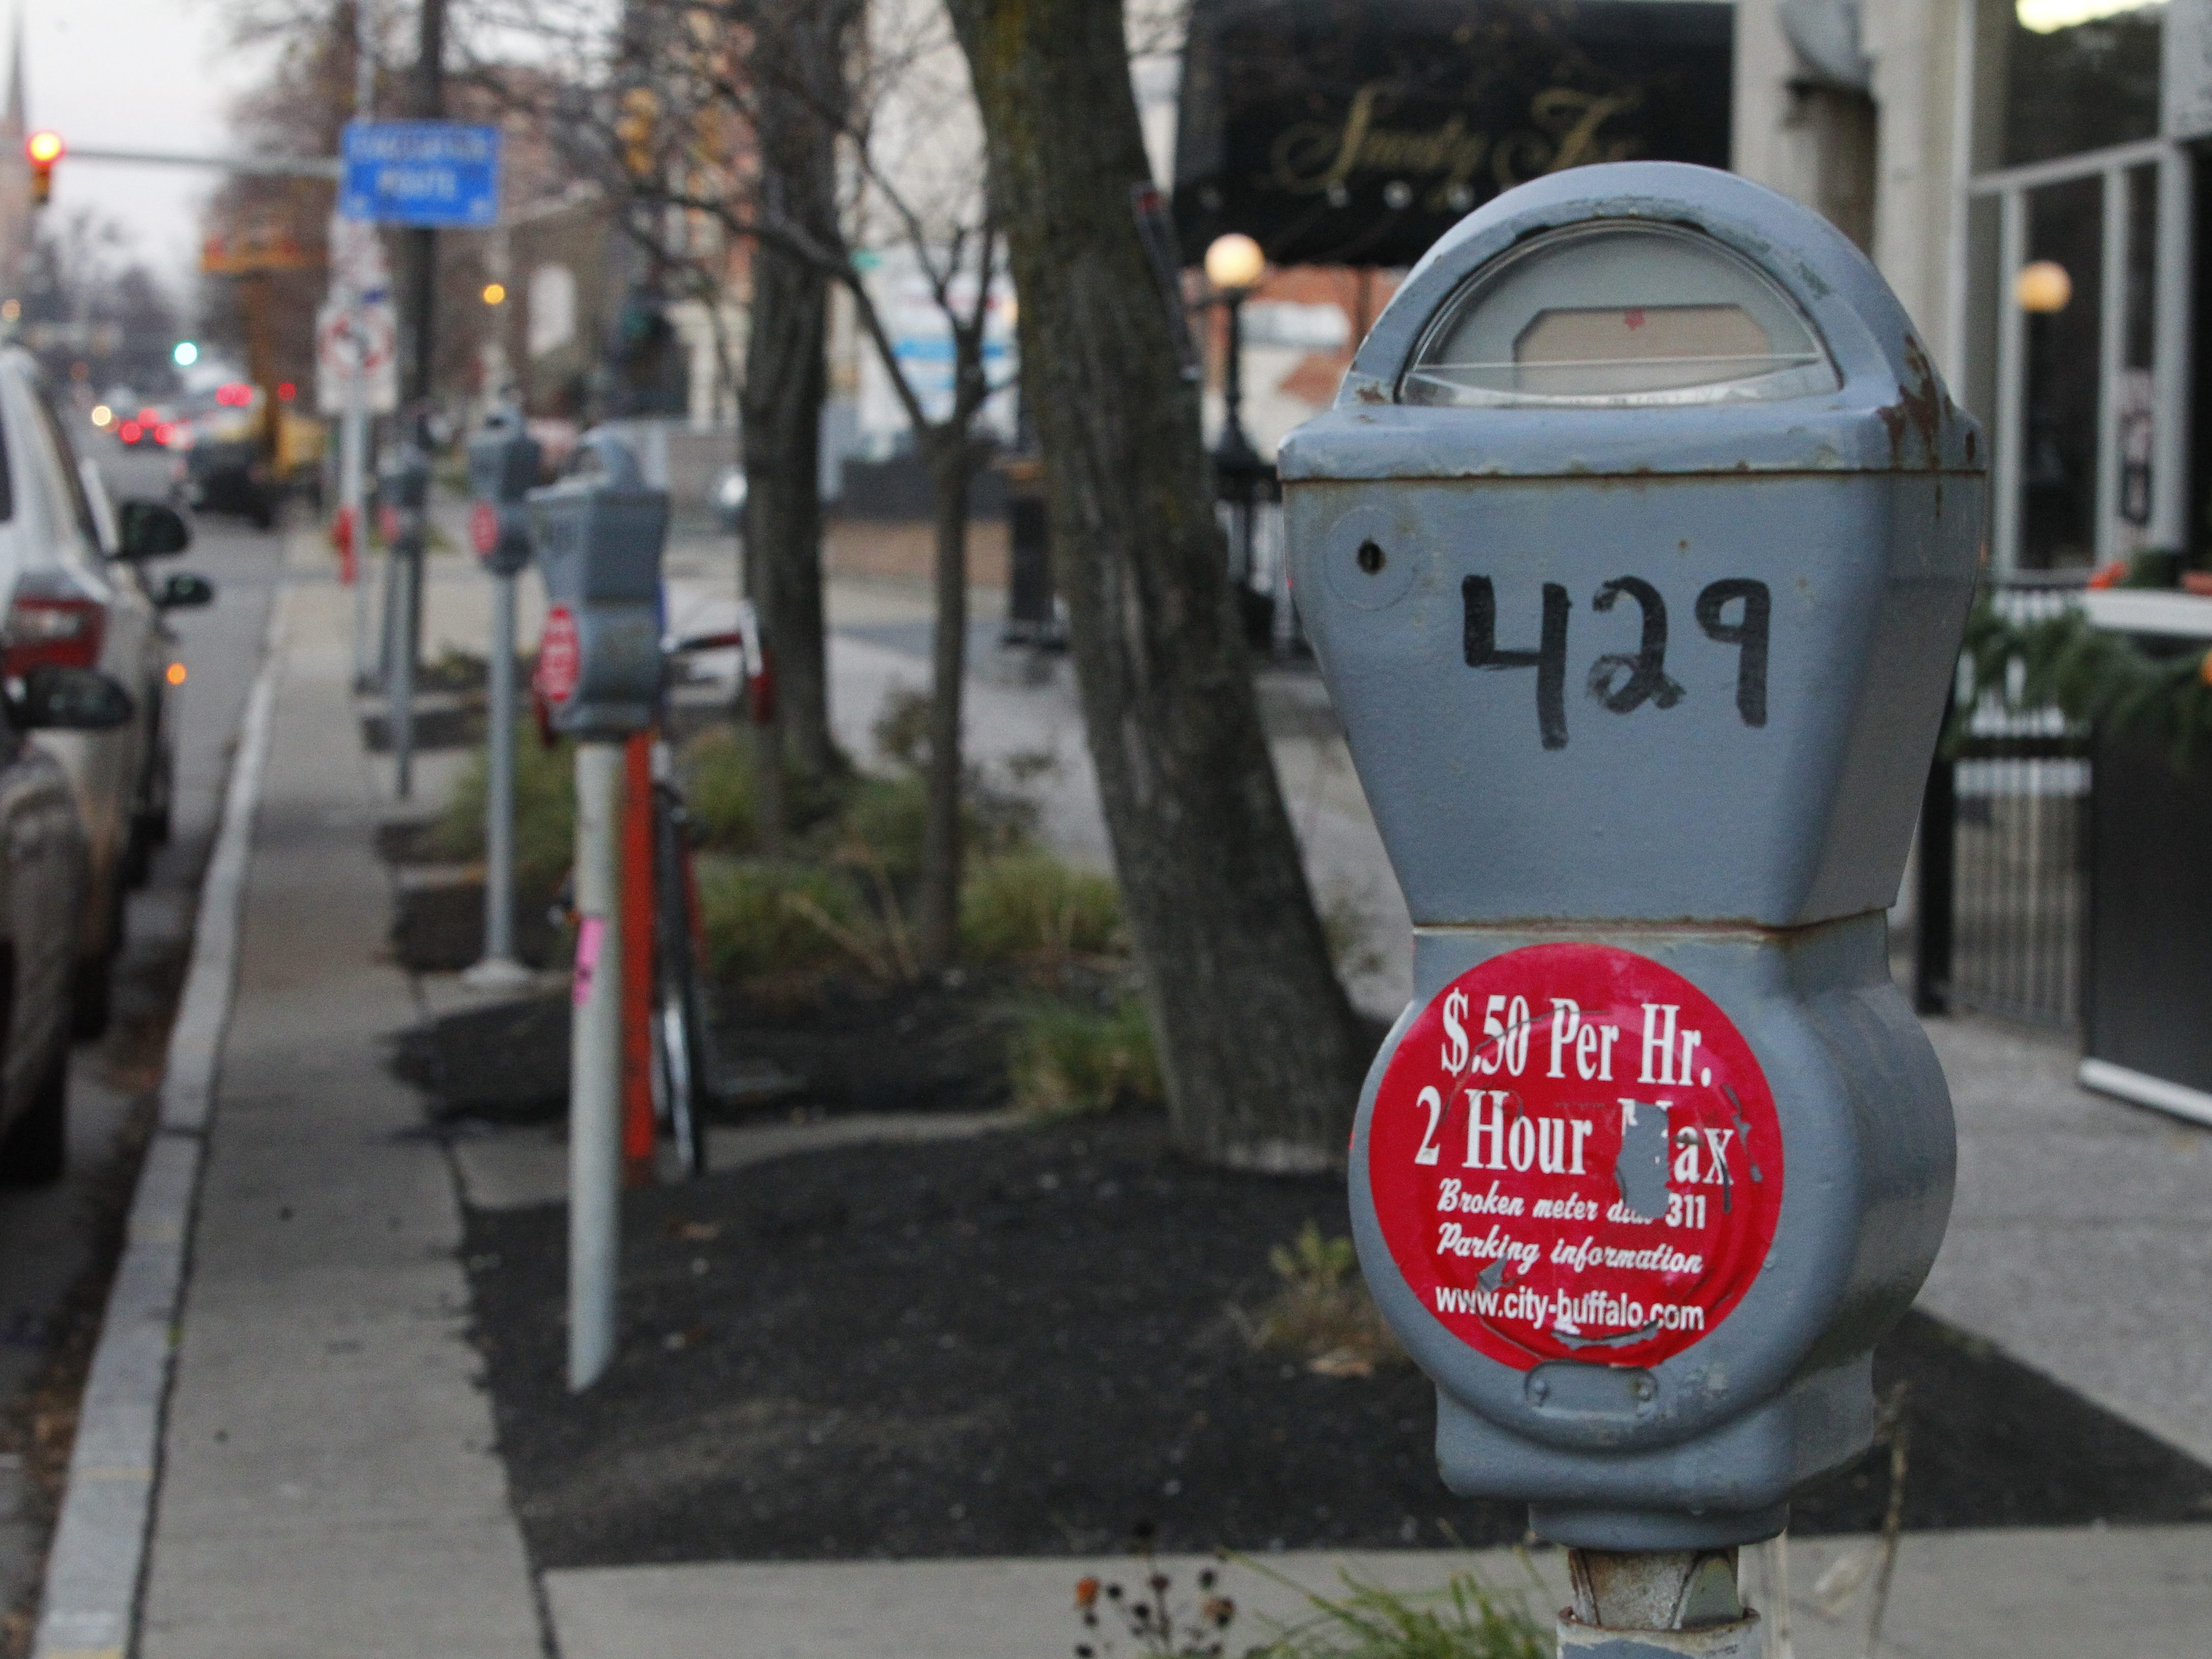 A former city employee has been charged in the theft of at least $1,300 in quarters from city parking meters. This is the third employee arrested in connection with parking meter thefts.